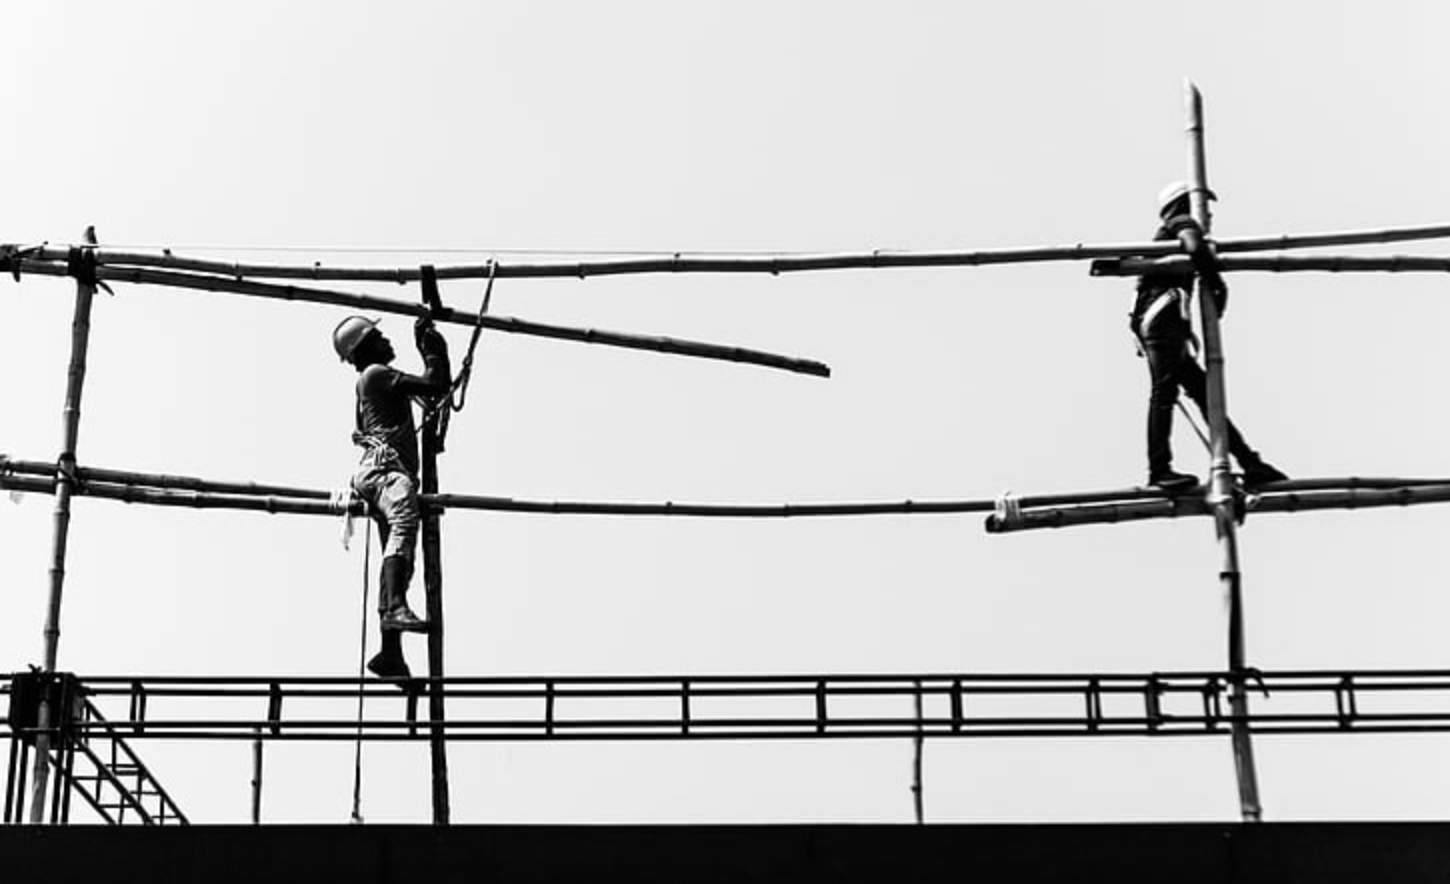 workmen on a building site without scaffolding